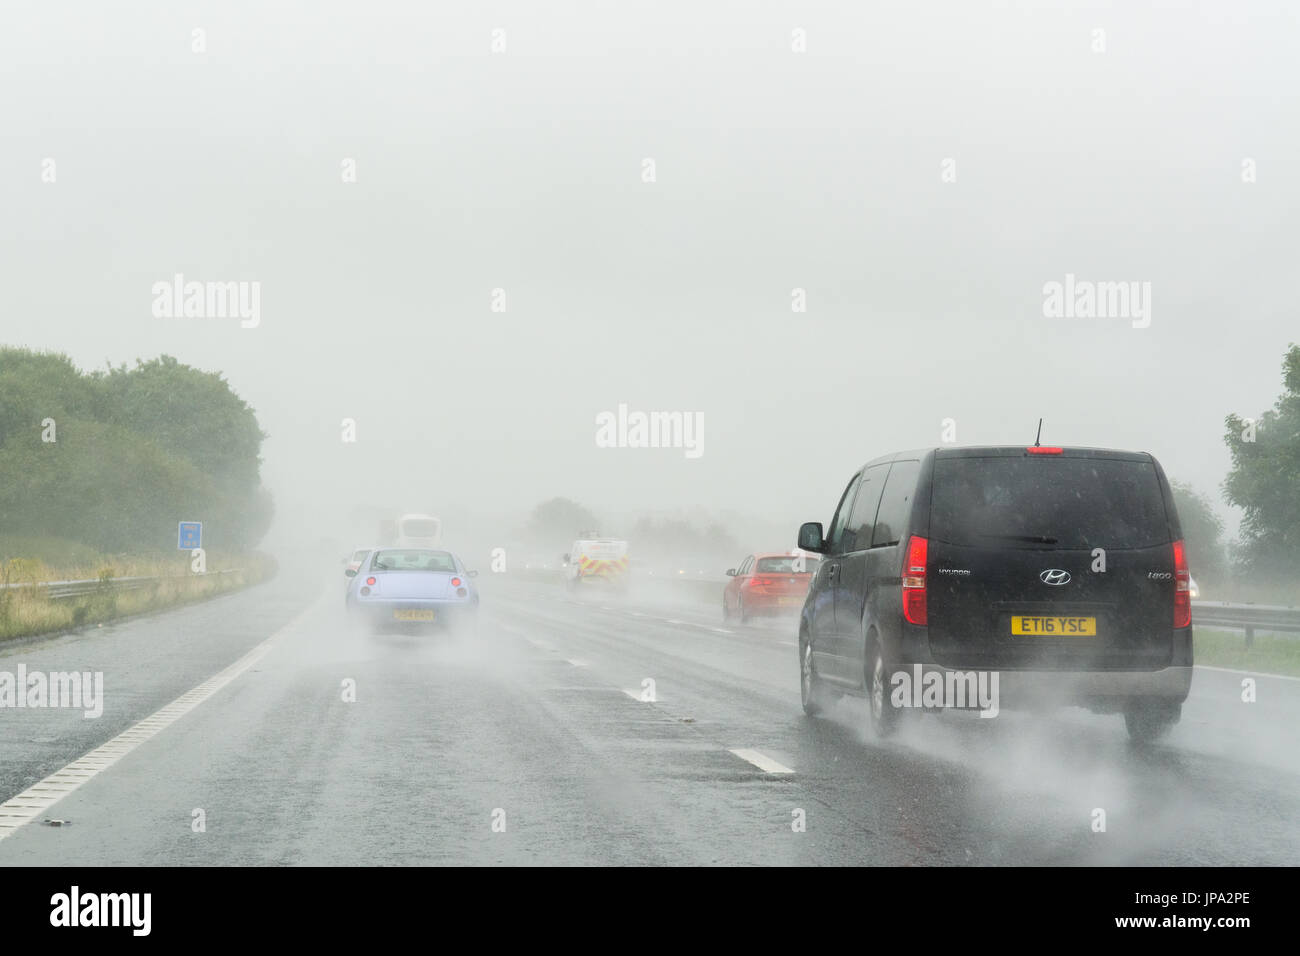 poor visibility on uk motorway due to surface water after heavy rain - Stock Image